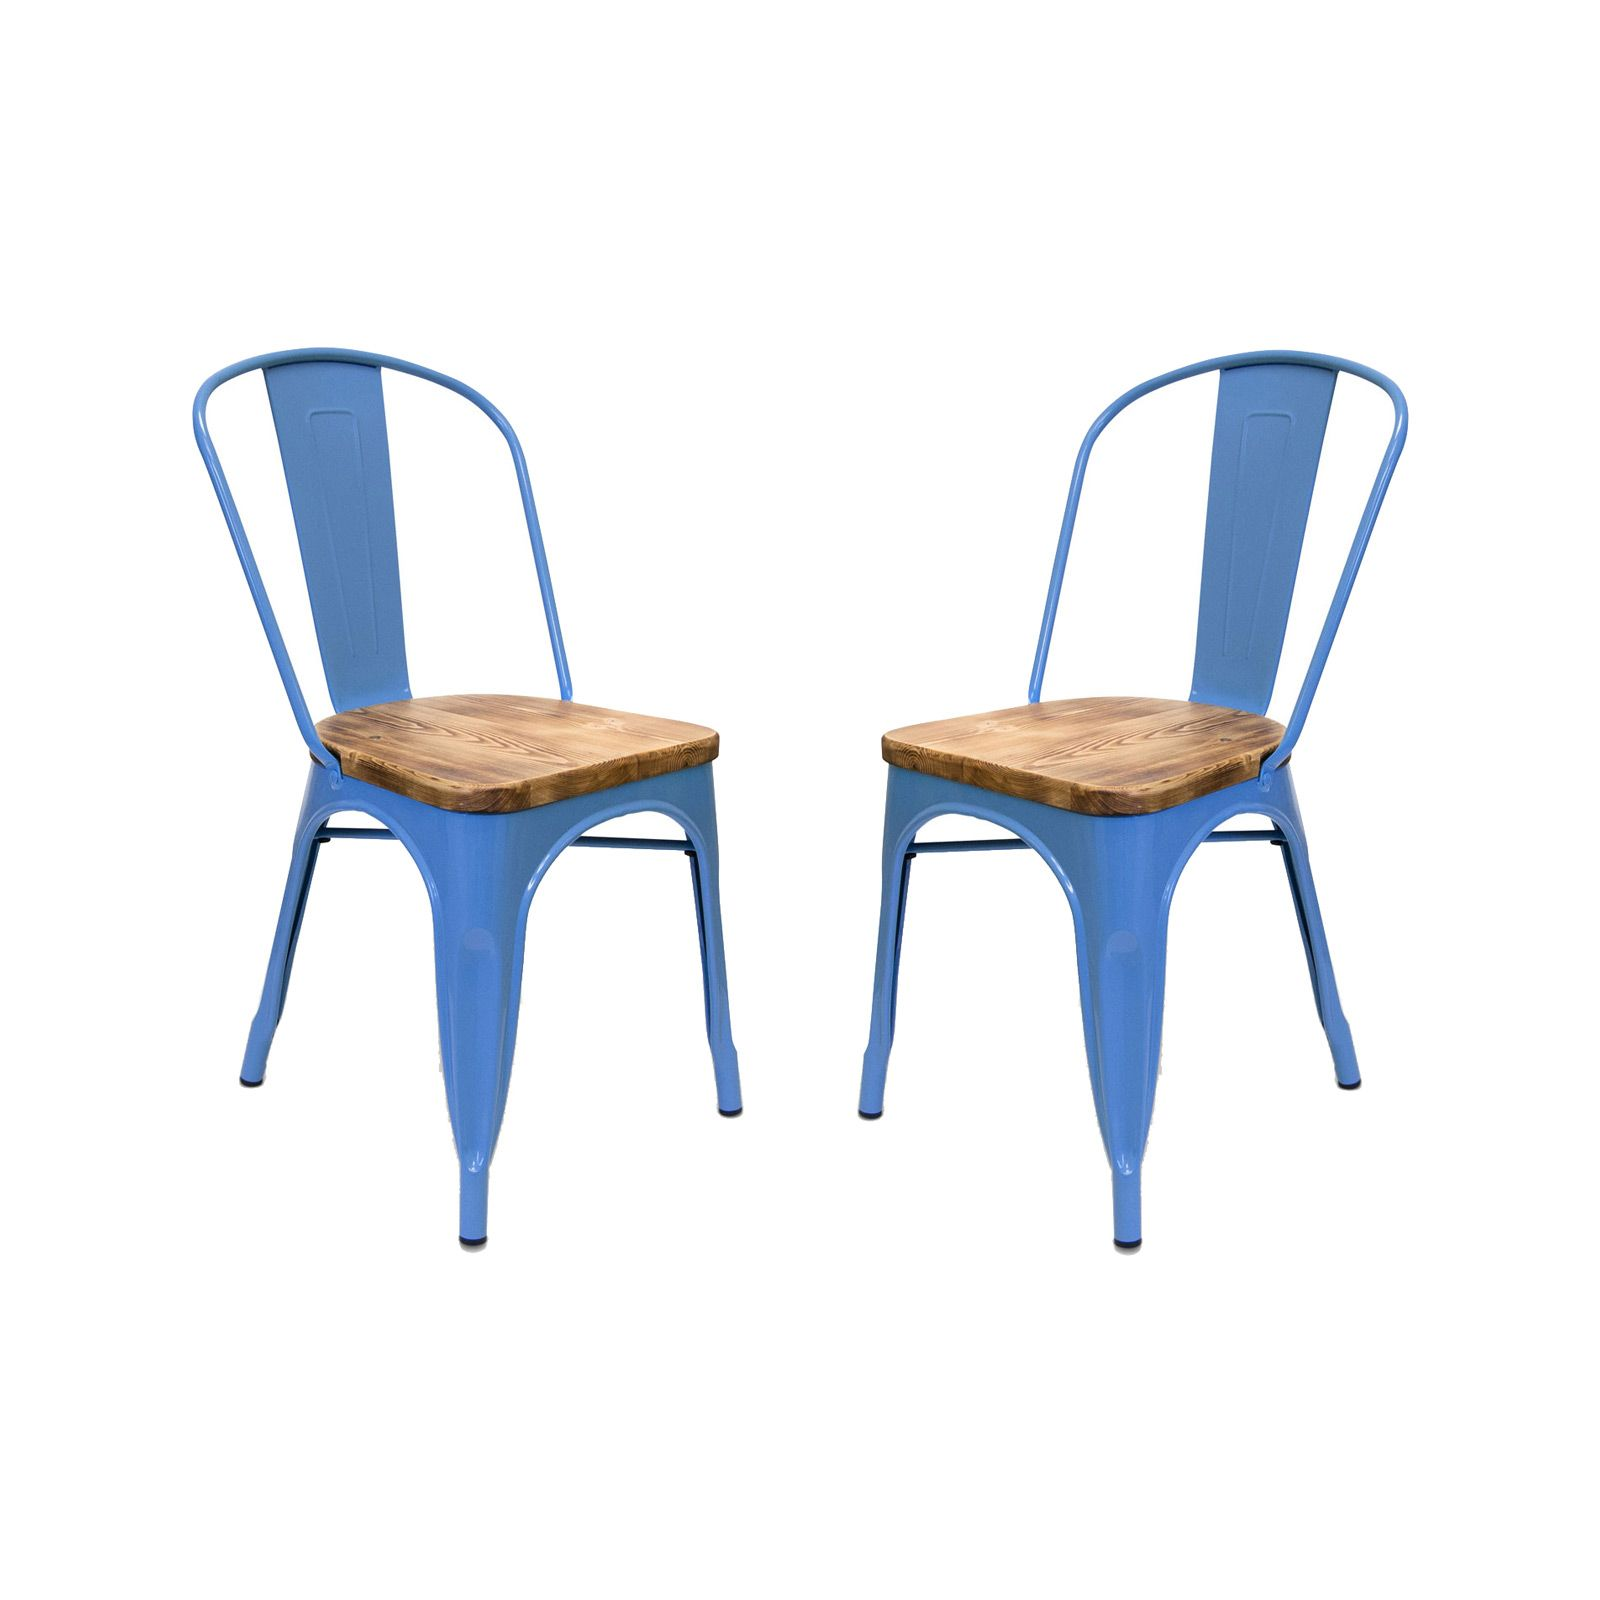 Get Amped Up Over This Shockingly Blue Bistro Chair. With A Painted Metal  Base And